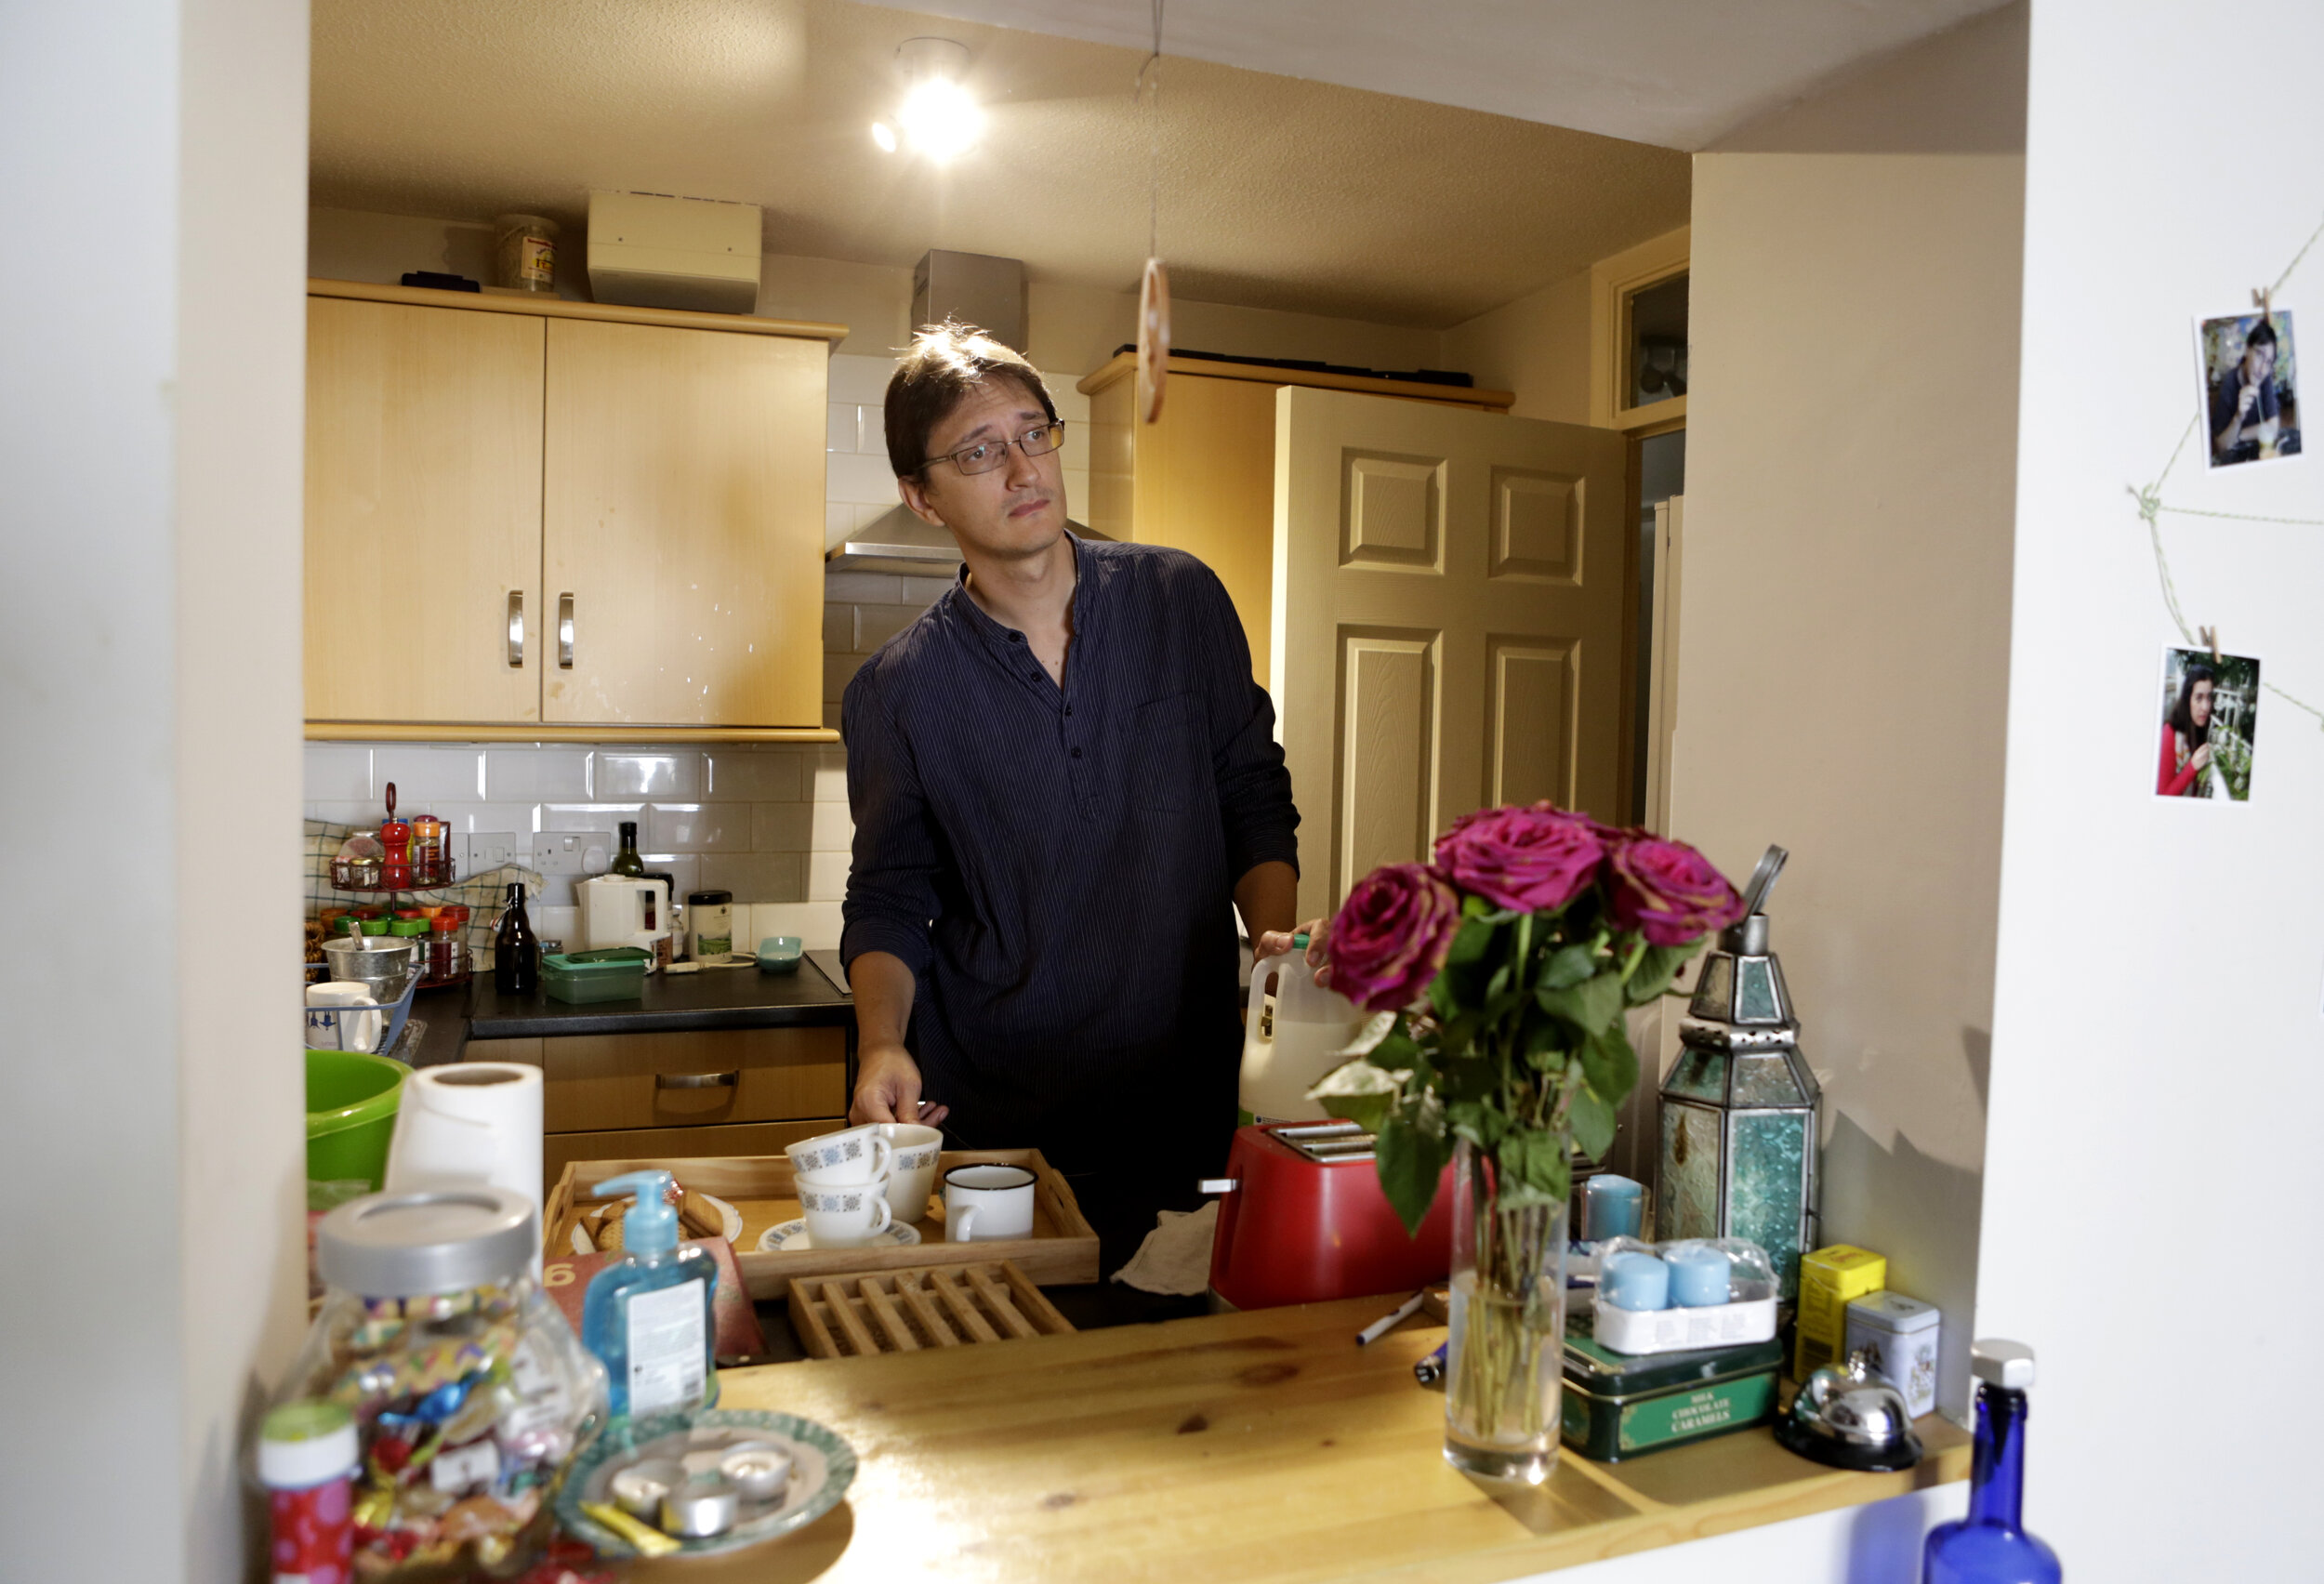 AT HOME - STORIES ON IMMIGRATION